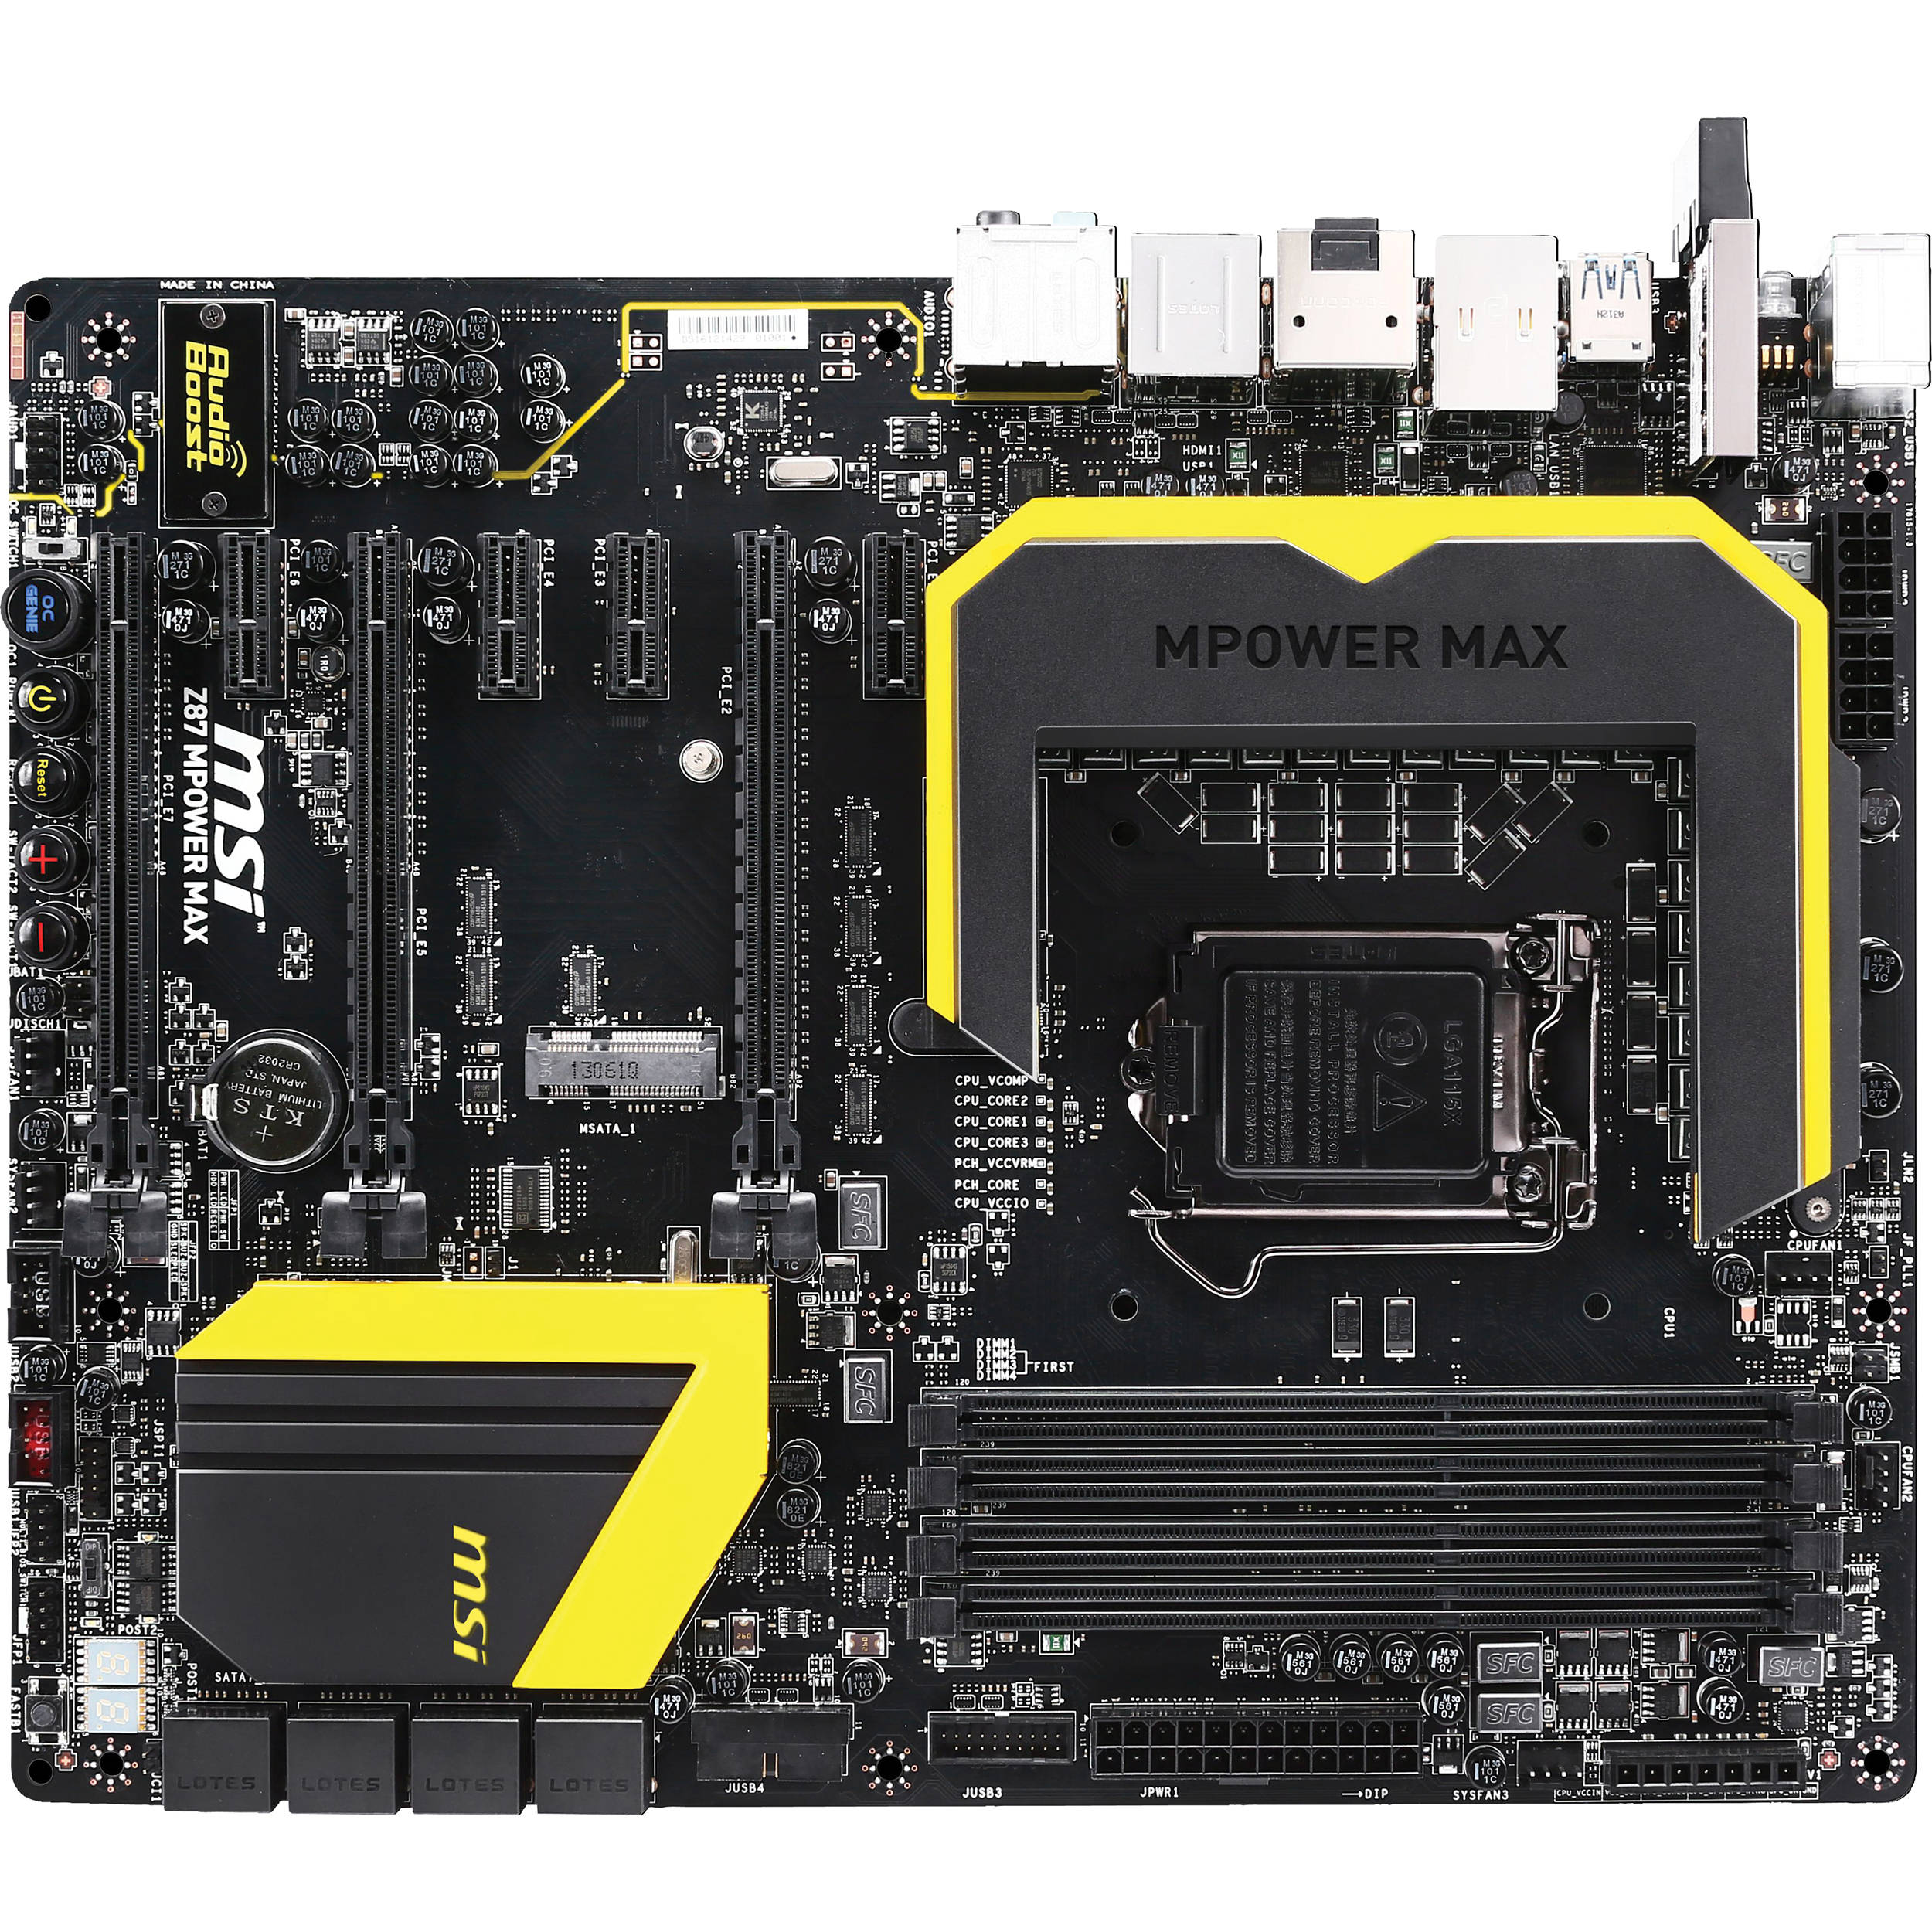 MSI Z87 MPOWER MAX ASMEDIA SATA DRIVER FOR WINDOWS